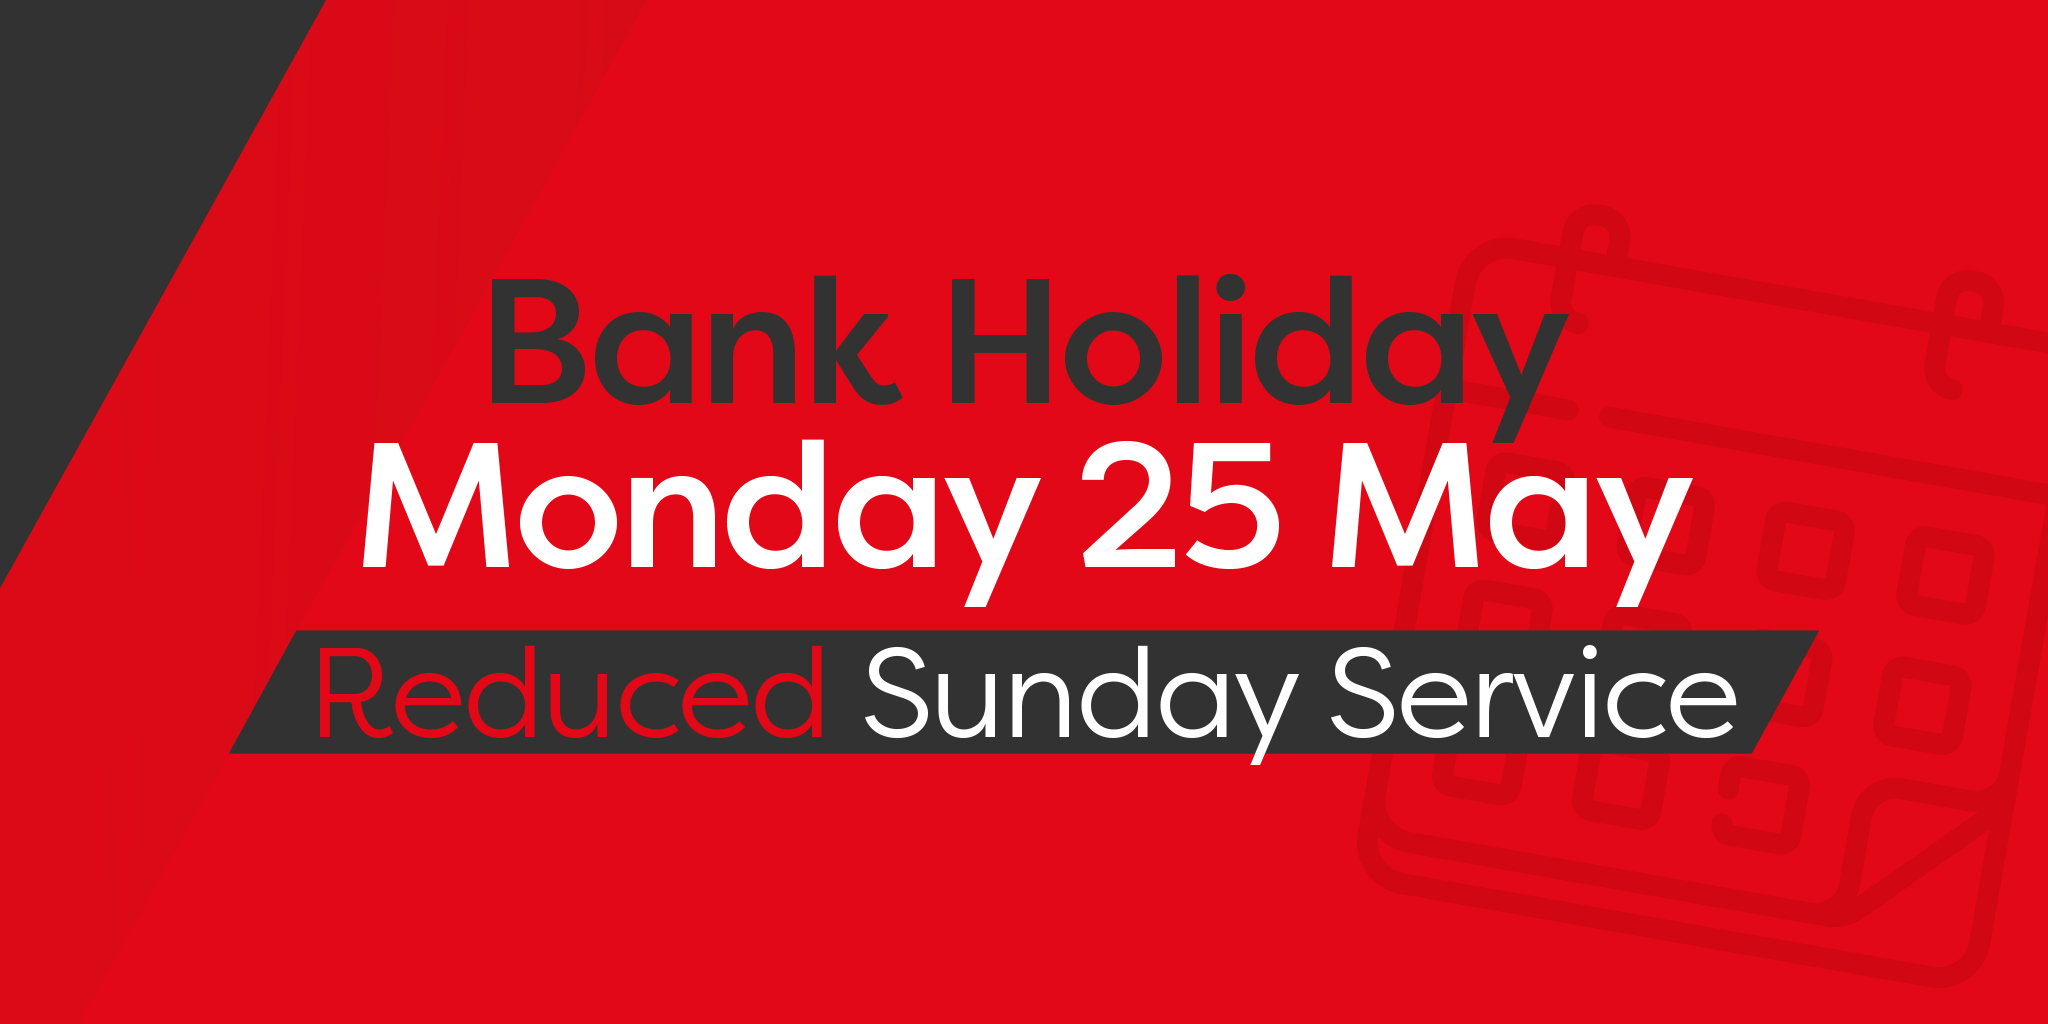 Image reading 'Bank Holiday - Monday 25th May - Reduced Sunday service'